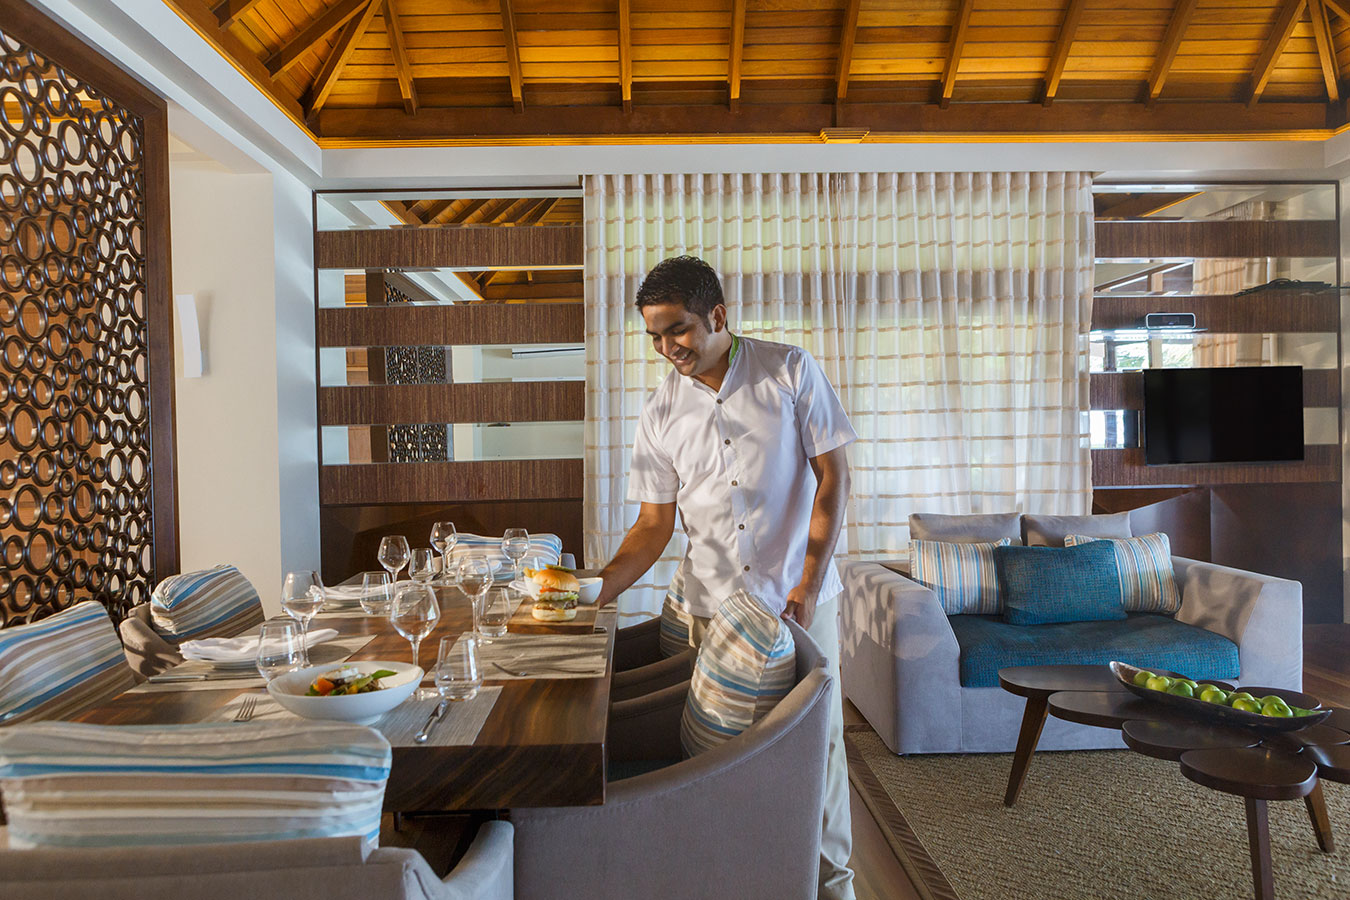 Kurumba Maldives - Royal Residence Butler Service Image - Maldives Resorts Pool Villa